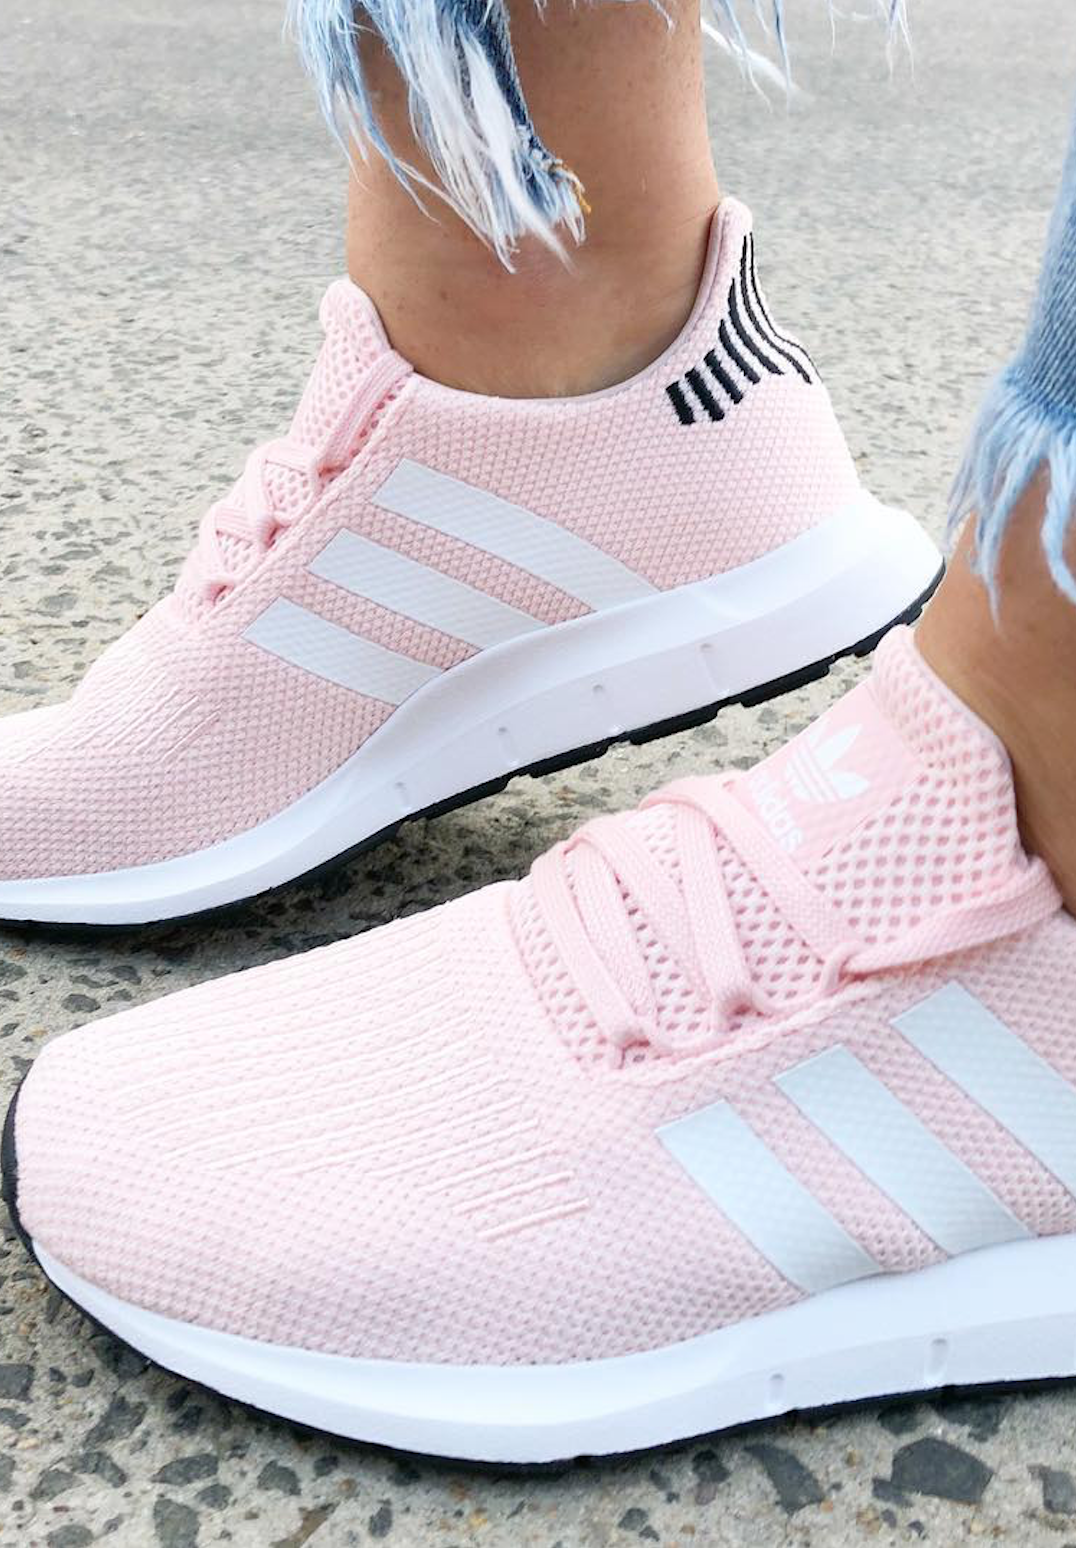 Womens adidas Swift Run Athletic Shoe Pink in 2020